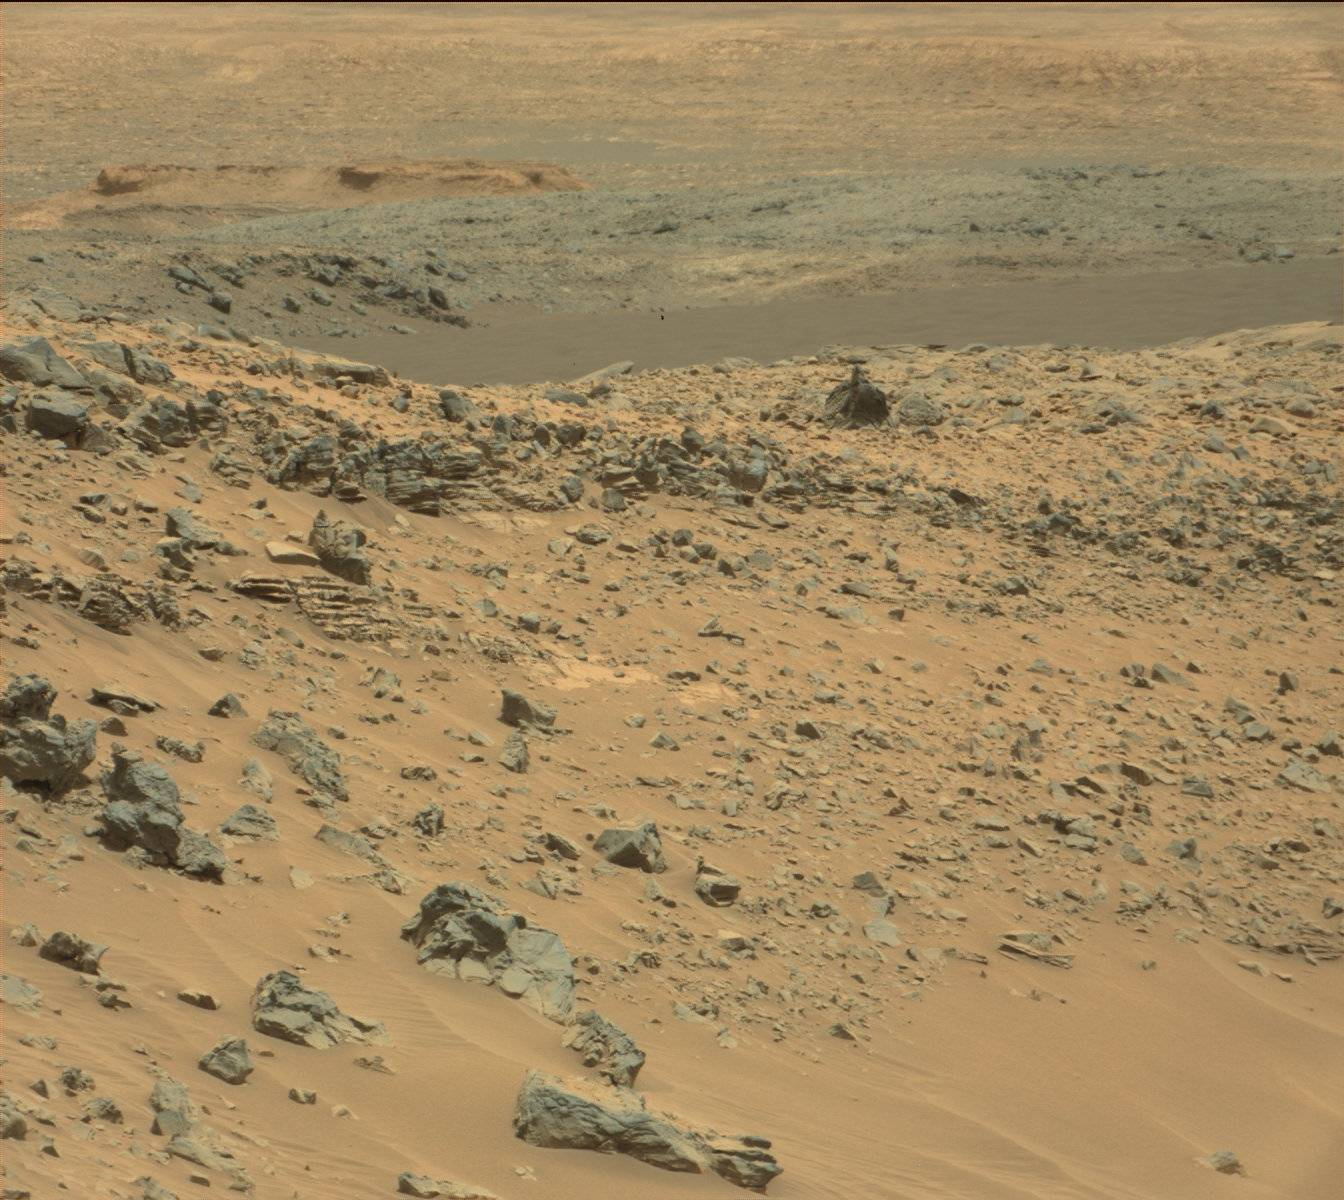 mars rovers destroyed - photo #3